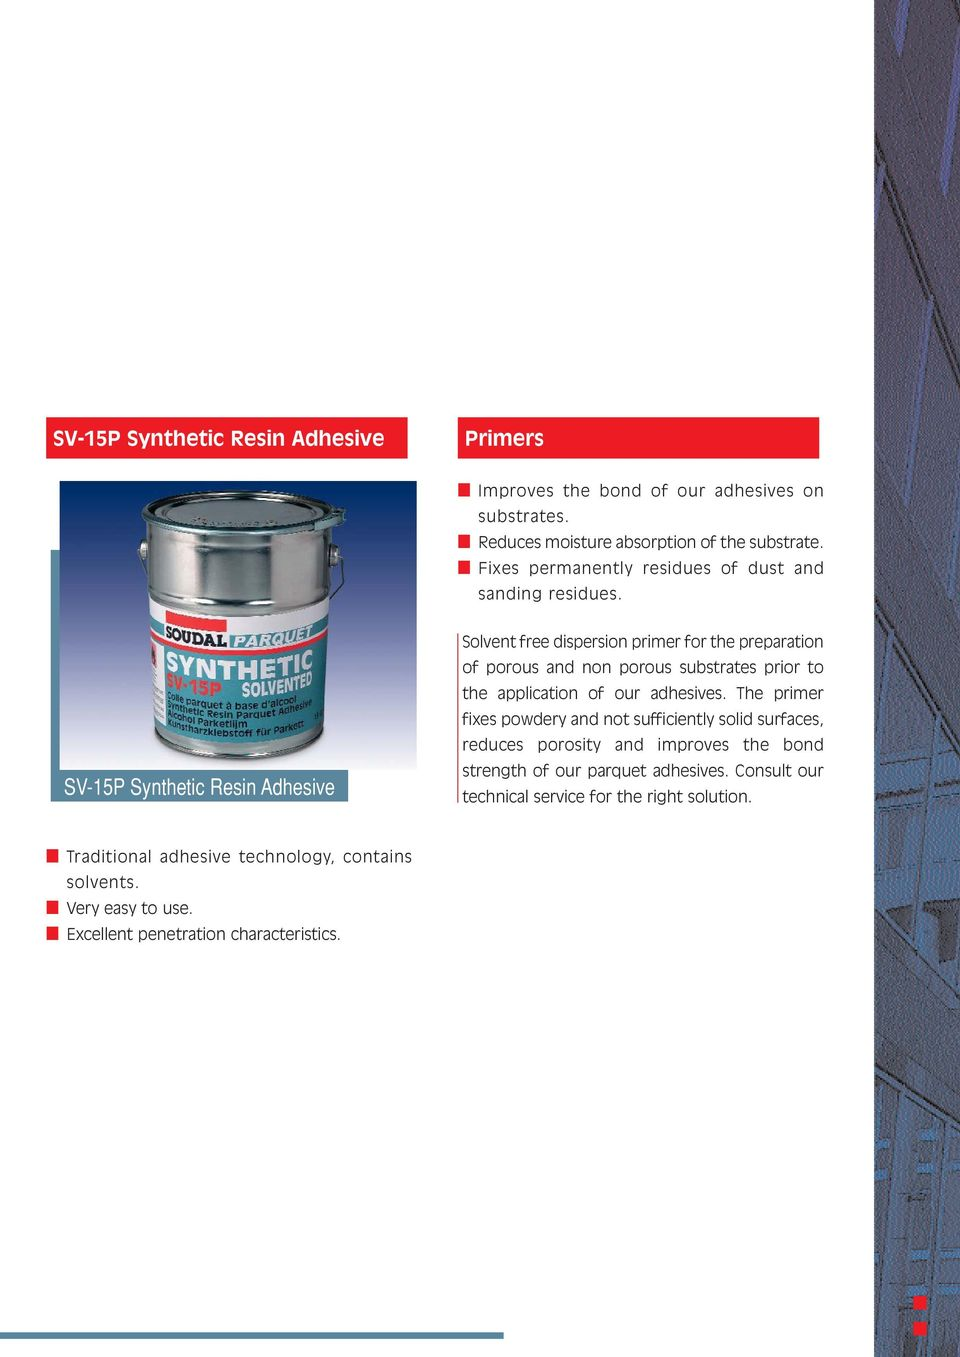 SV-15P Synthetic Resin Adhesive Solvent free dispersion primer for the preparation of porous and non porous substrates prior to the application of our adhesives.